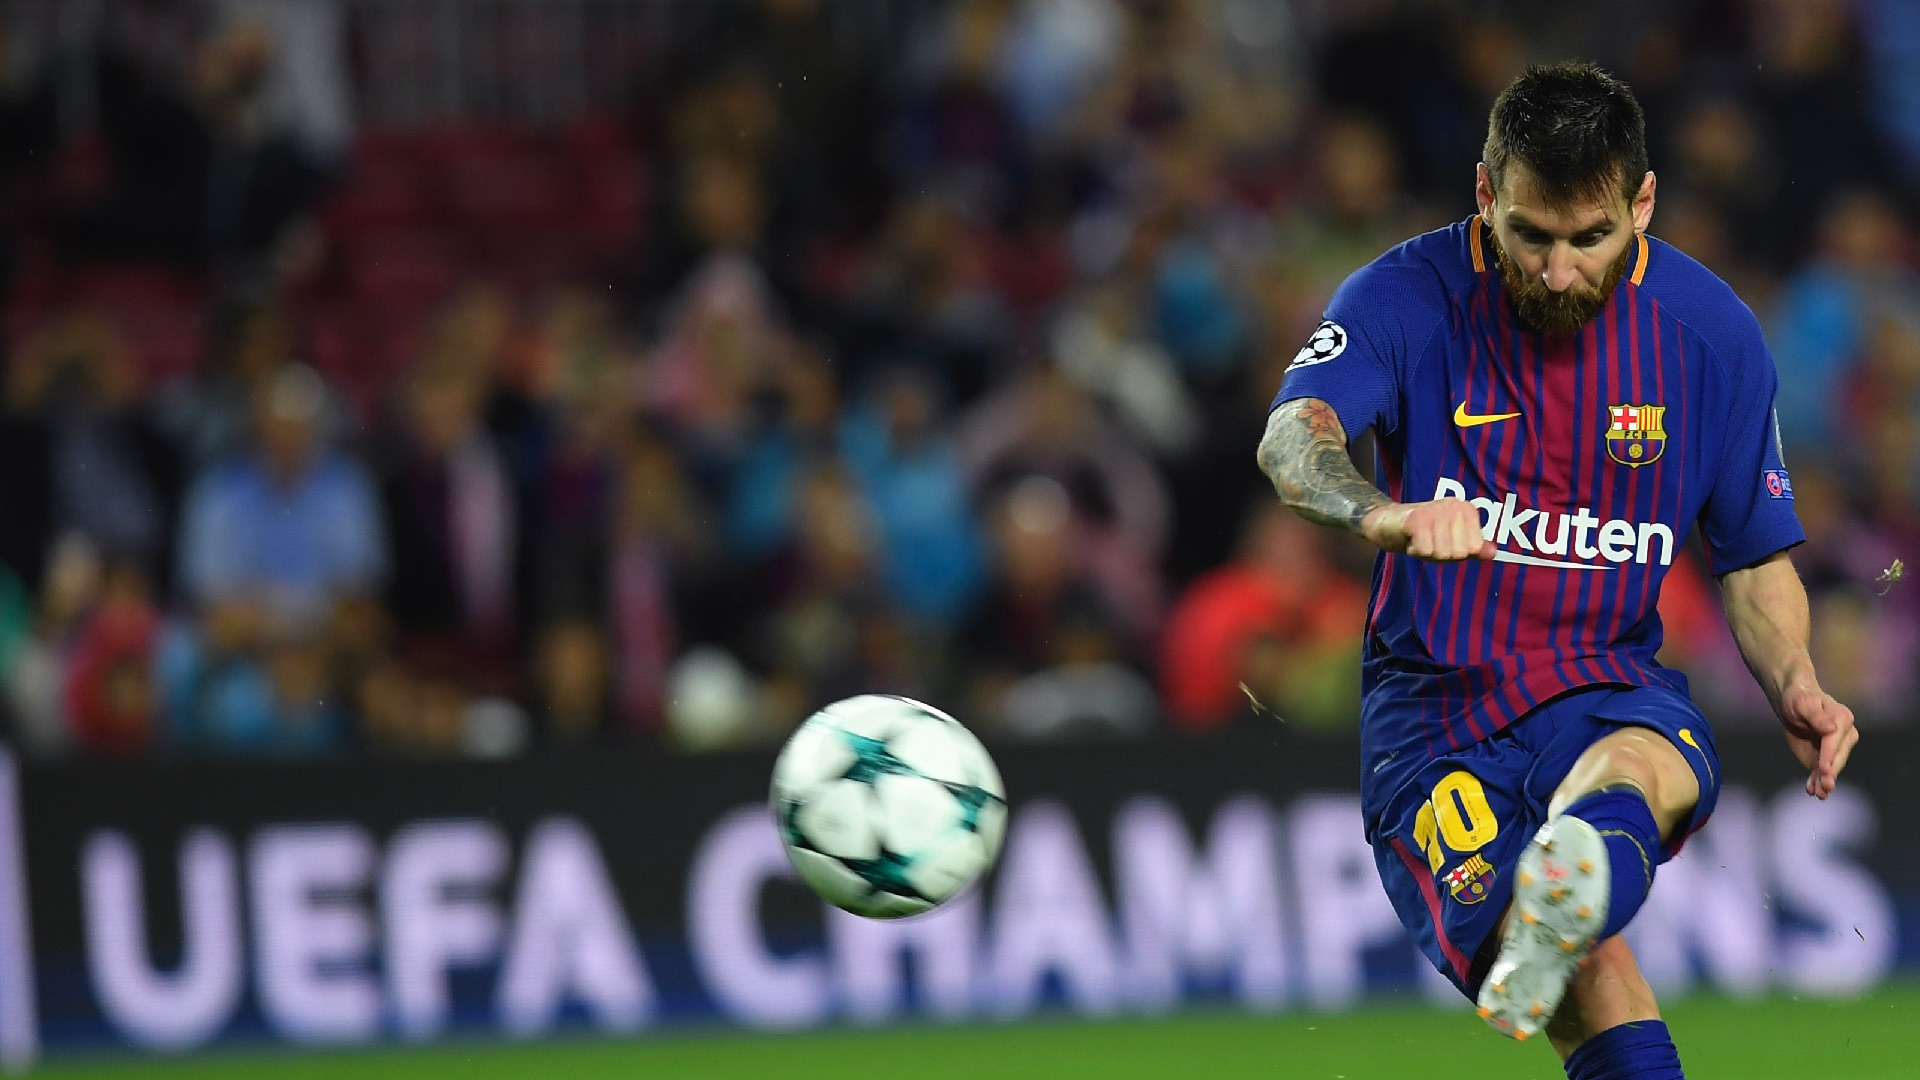 https://images.performgroup.com/di/library/GOAL/f9/cc/lionel-messi-barcelona-olympiakos-ucl-18102017_gbhcm8azbmmt1hr5v8xmst6vo.jpg